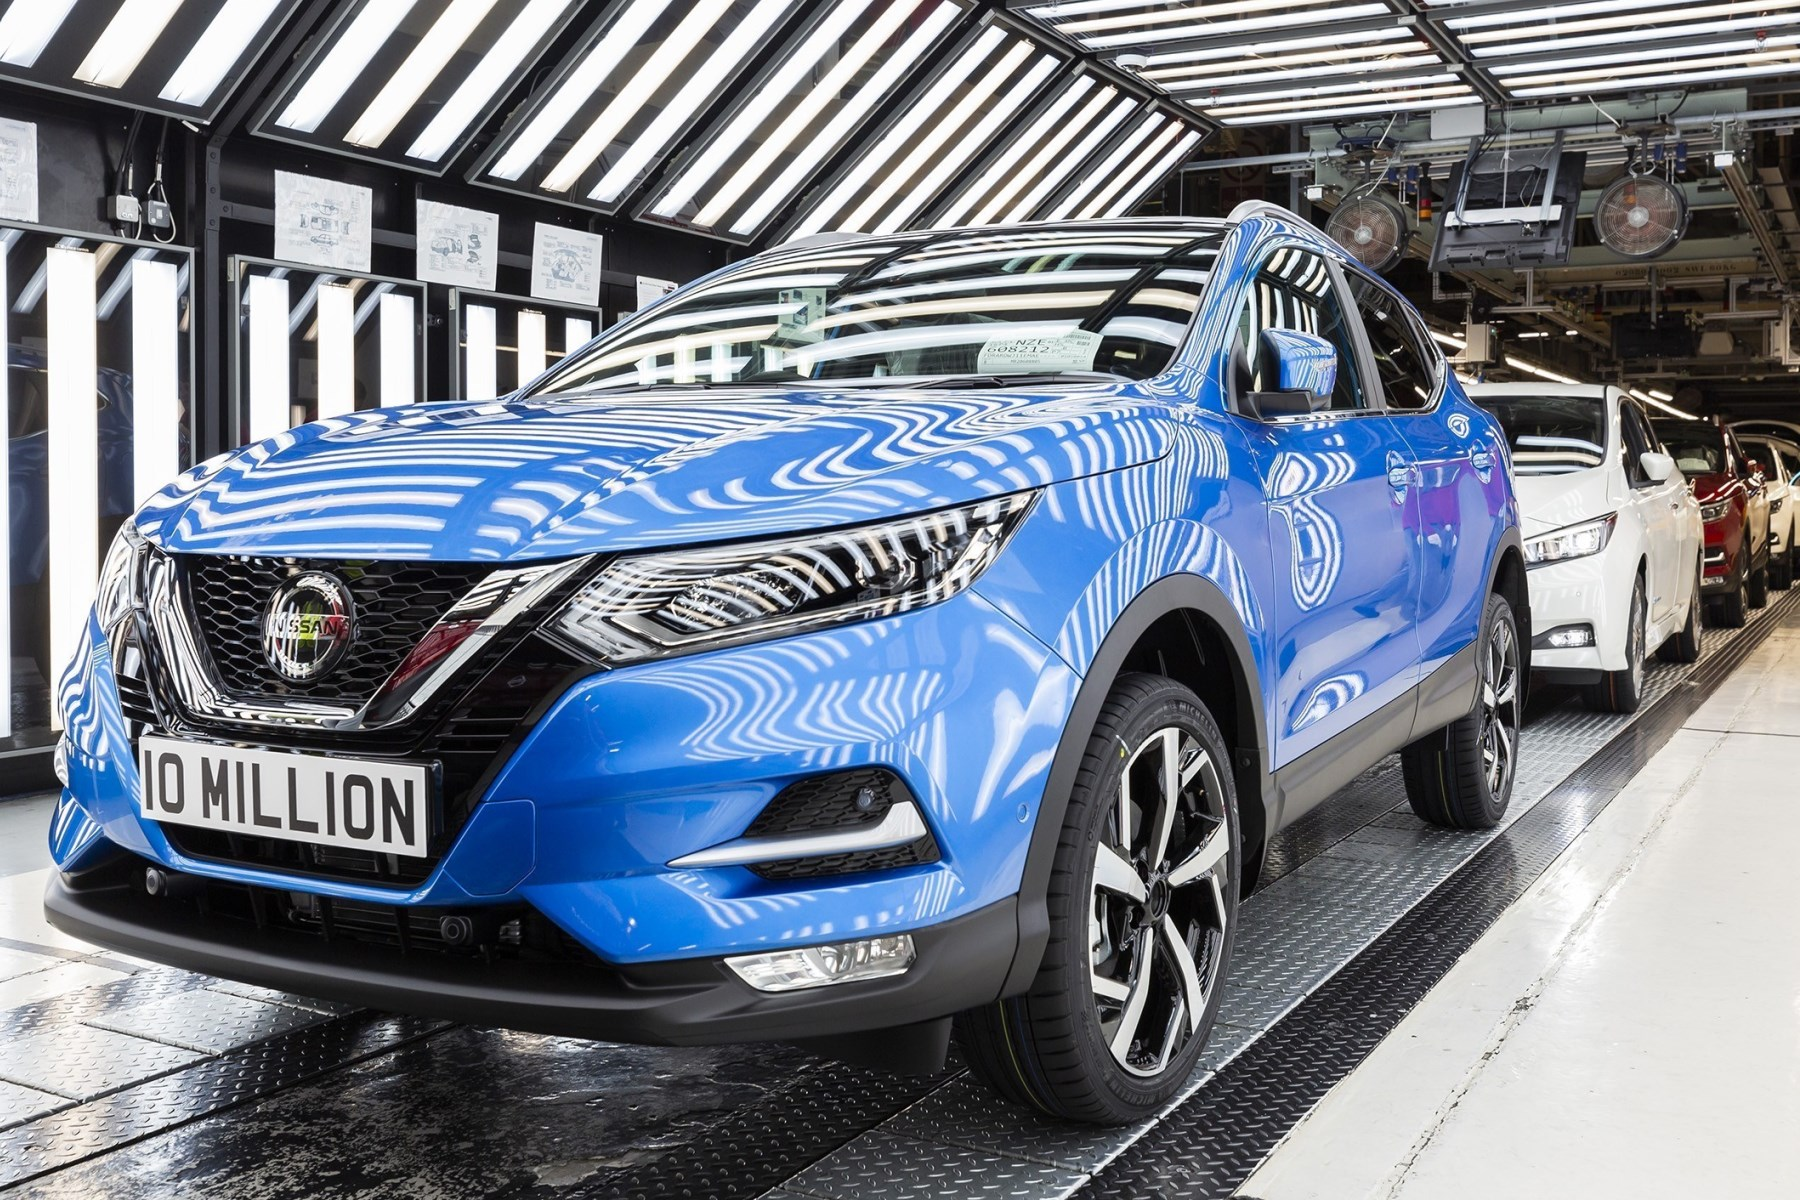 10 millionth Nissan built at Sunderland